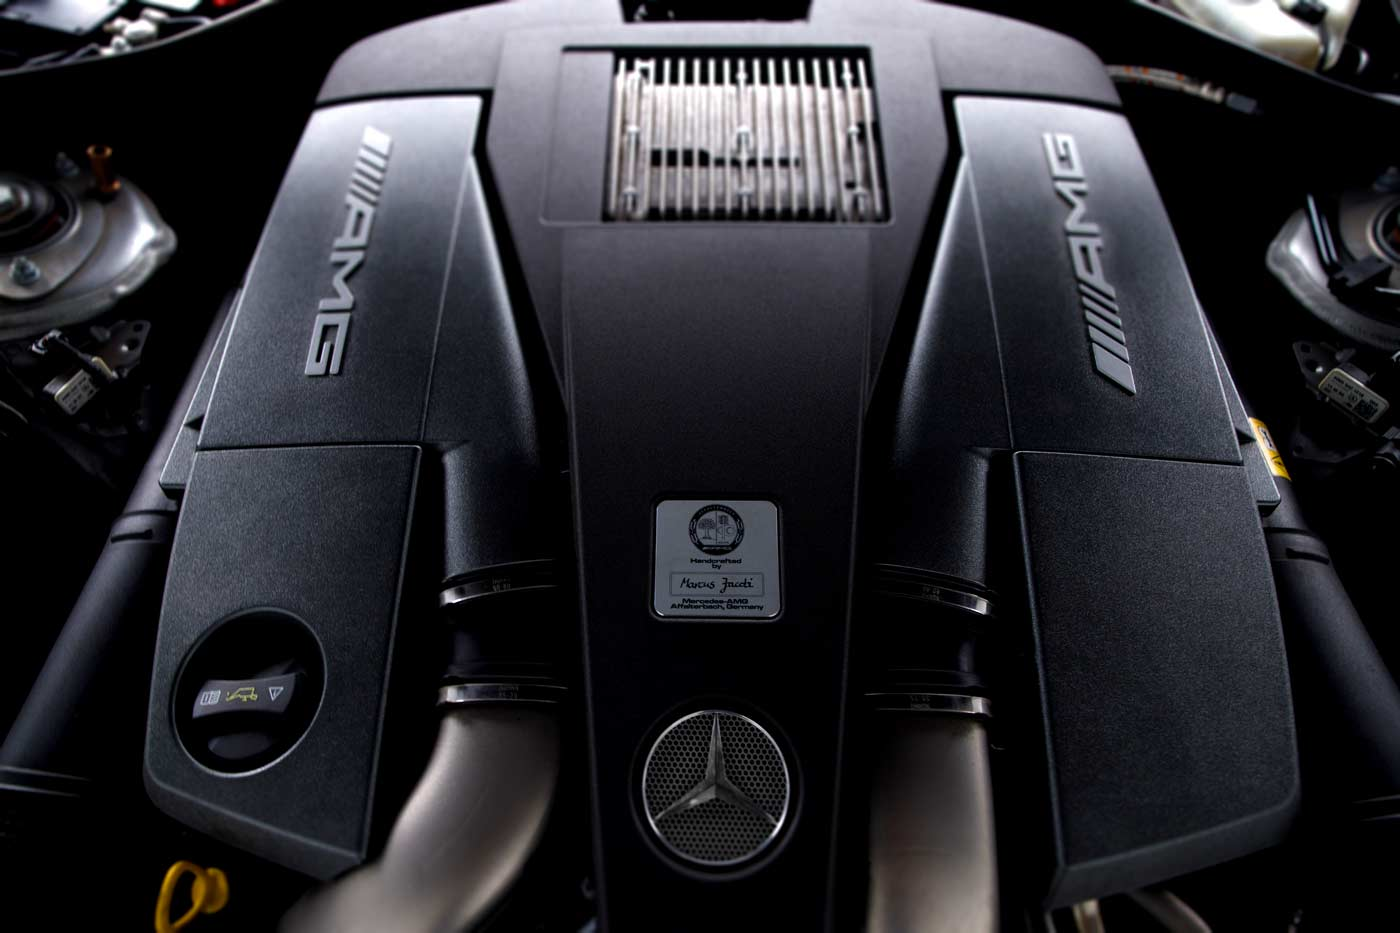 2011 Mercedes Benz S63 AMG - The JBS Collection